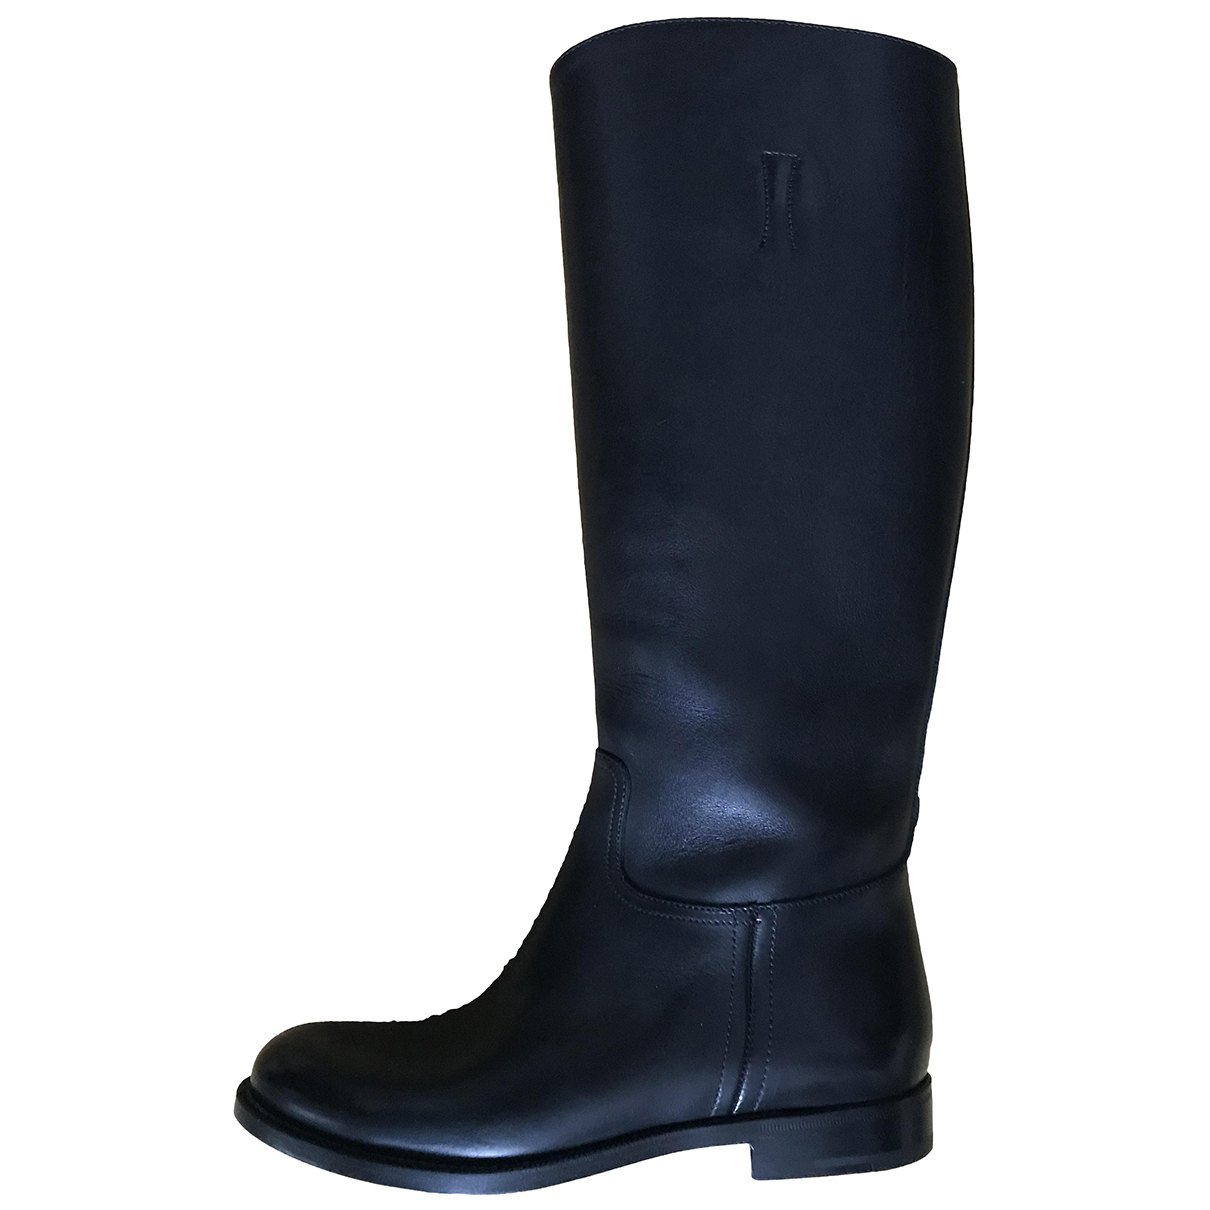 Prada N Black Leather Boots for Women 37 IT